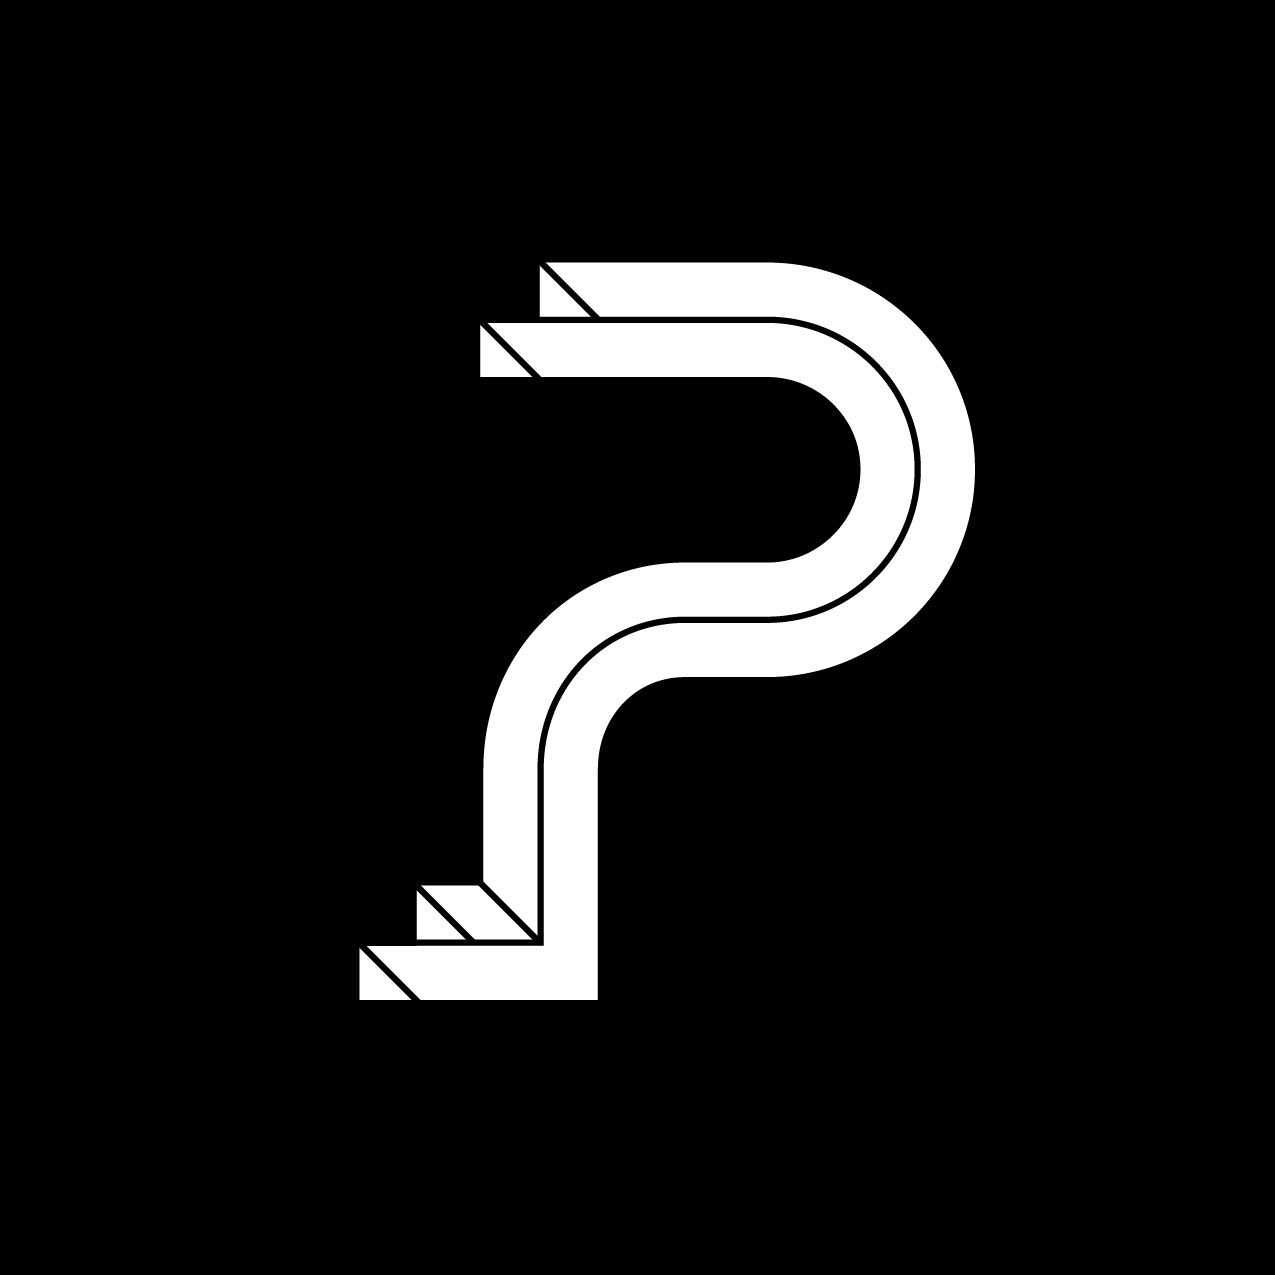 Letter P8 Design by Furia